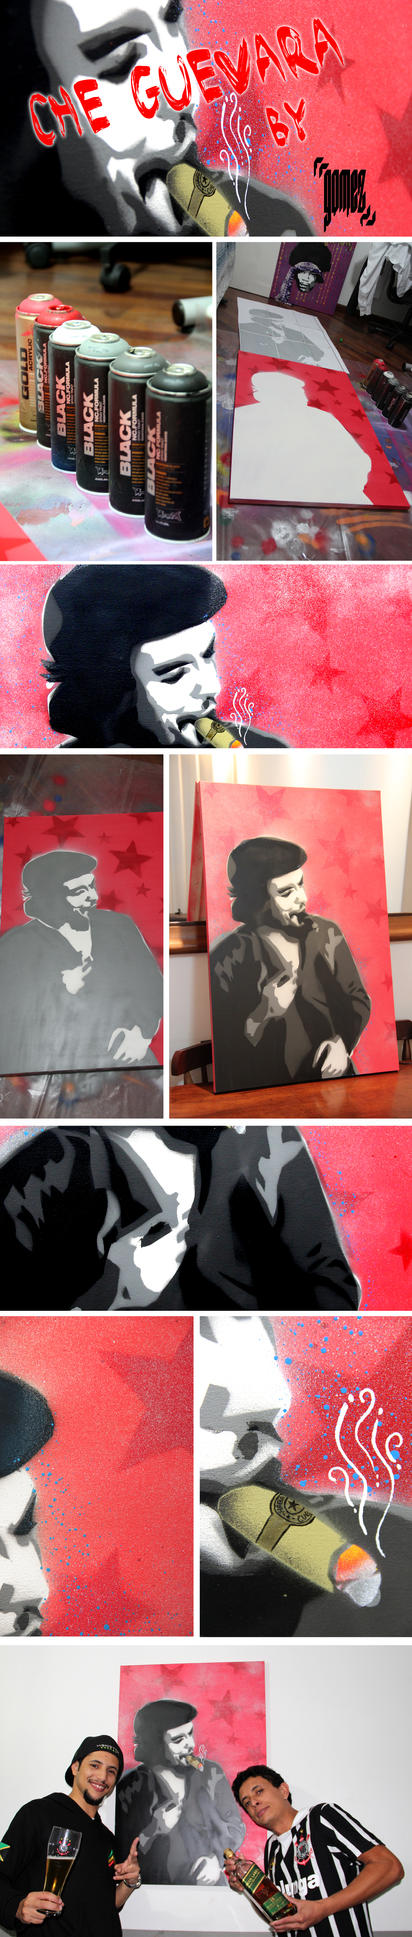 Che Guevara - Stencil on Canvas Process by byCavalera